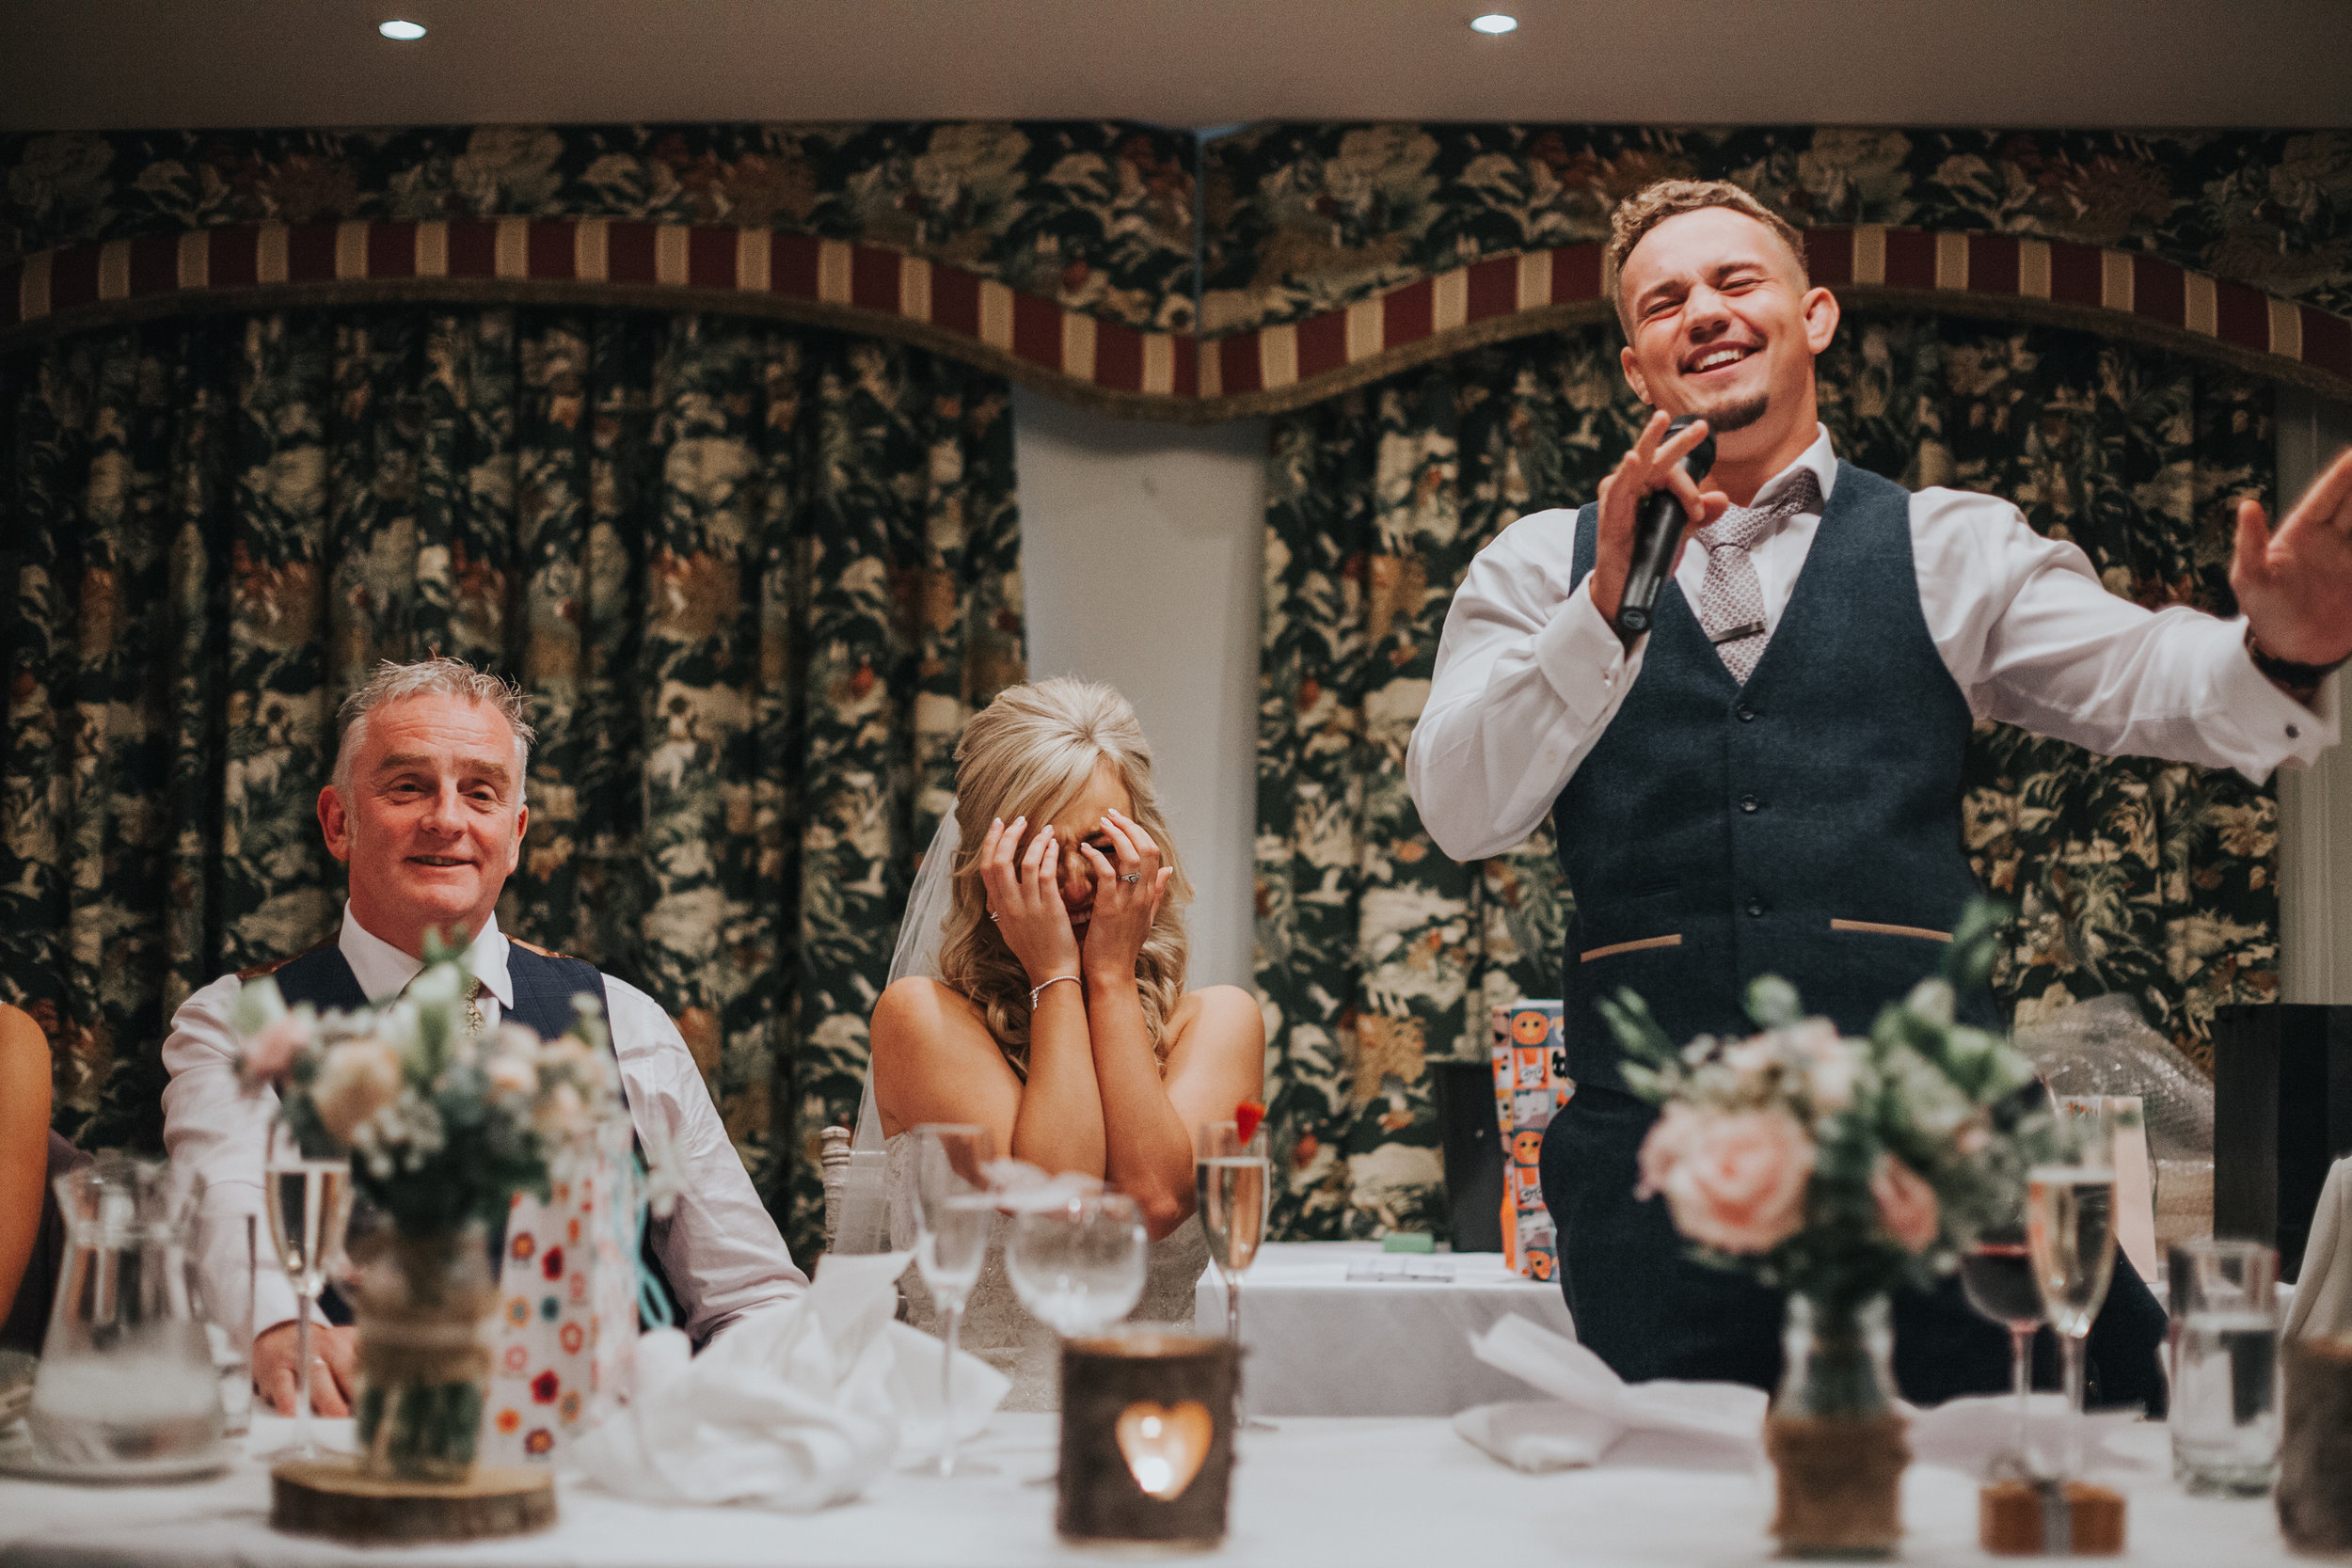 Bride holds hands over her face as her husband makes his speech.